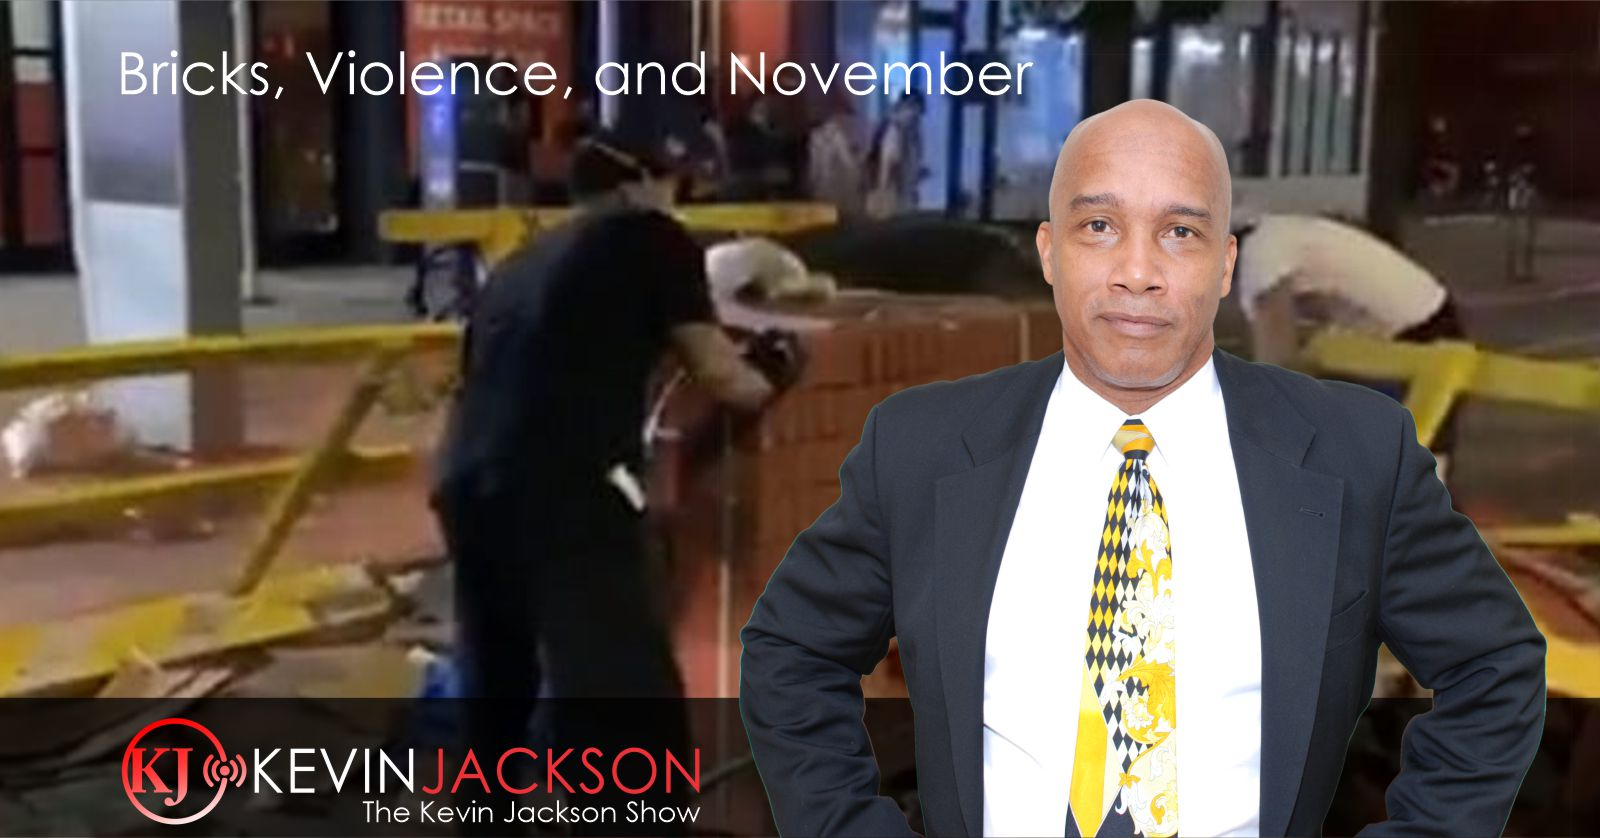 Bricks, Violence, and November